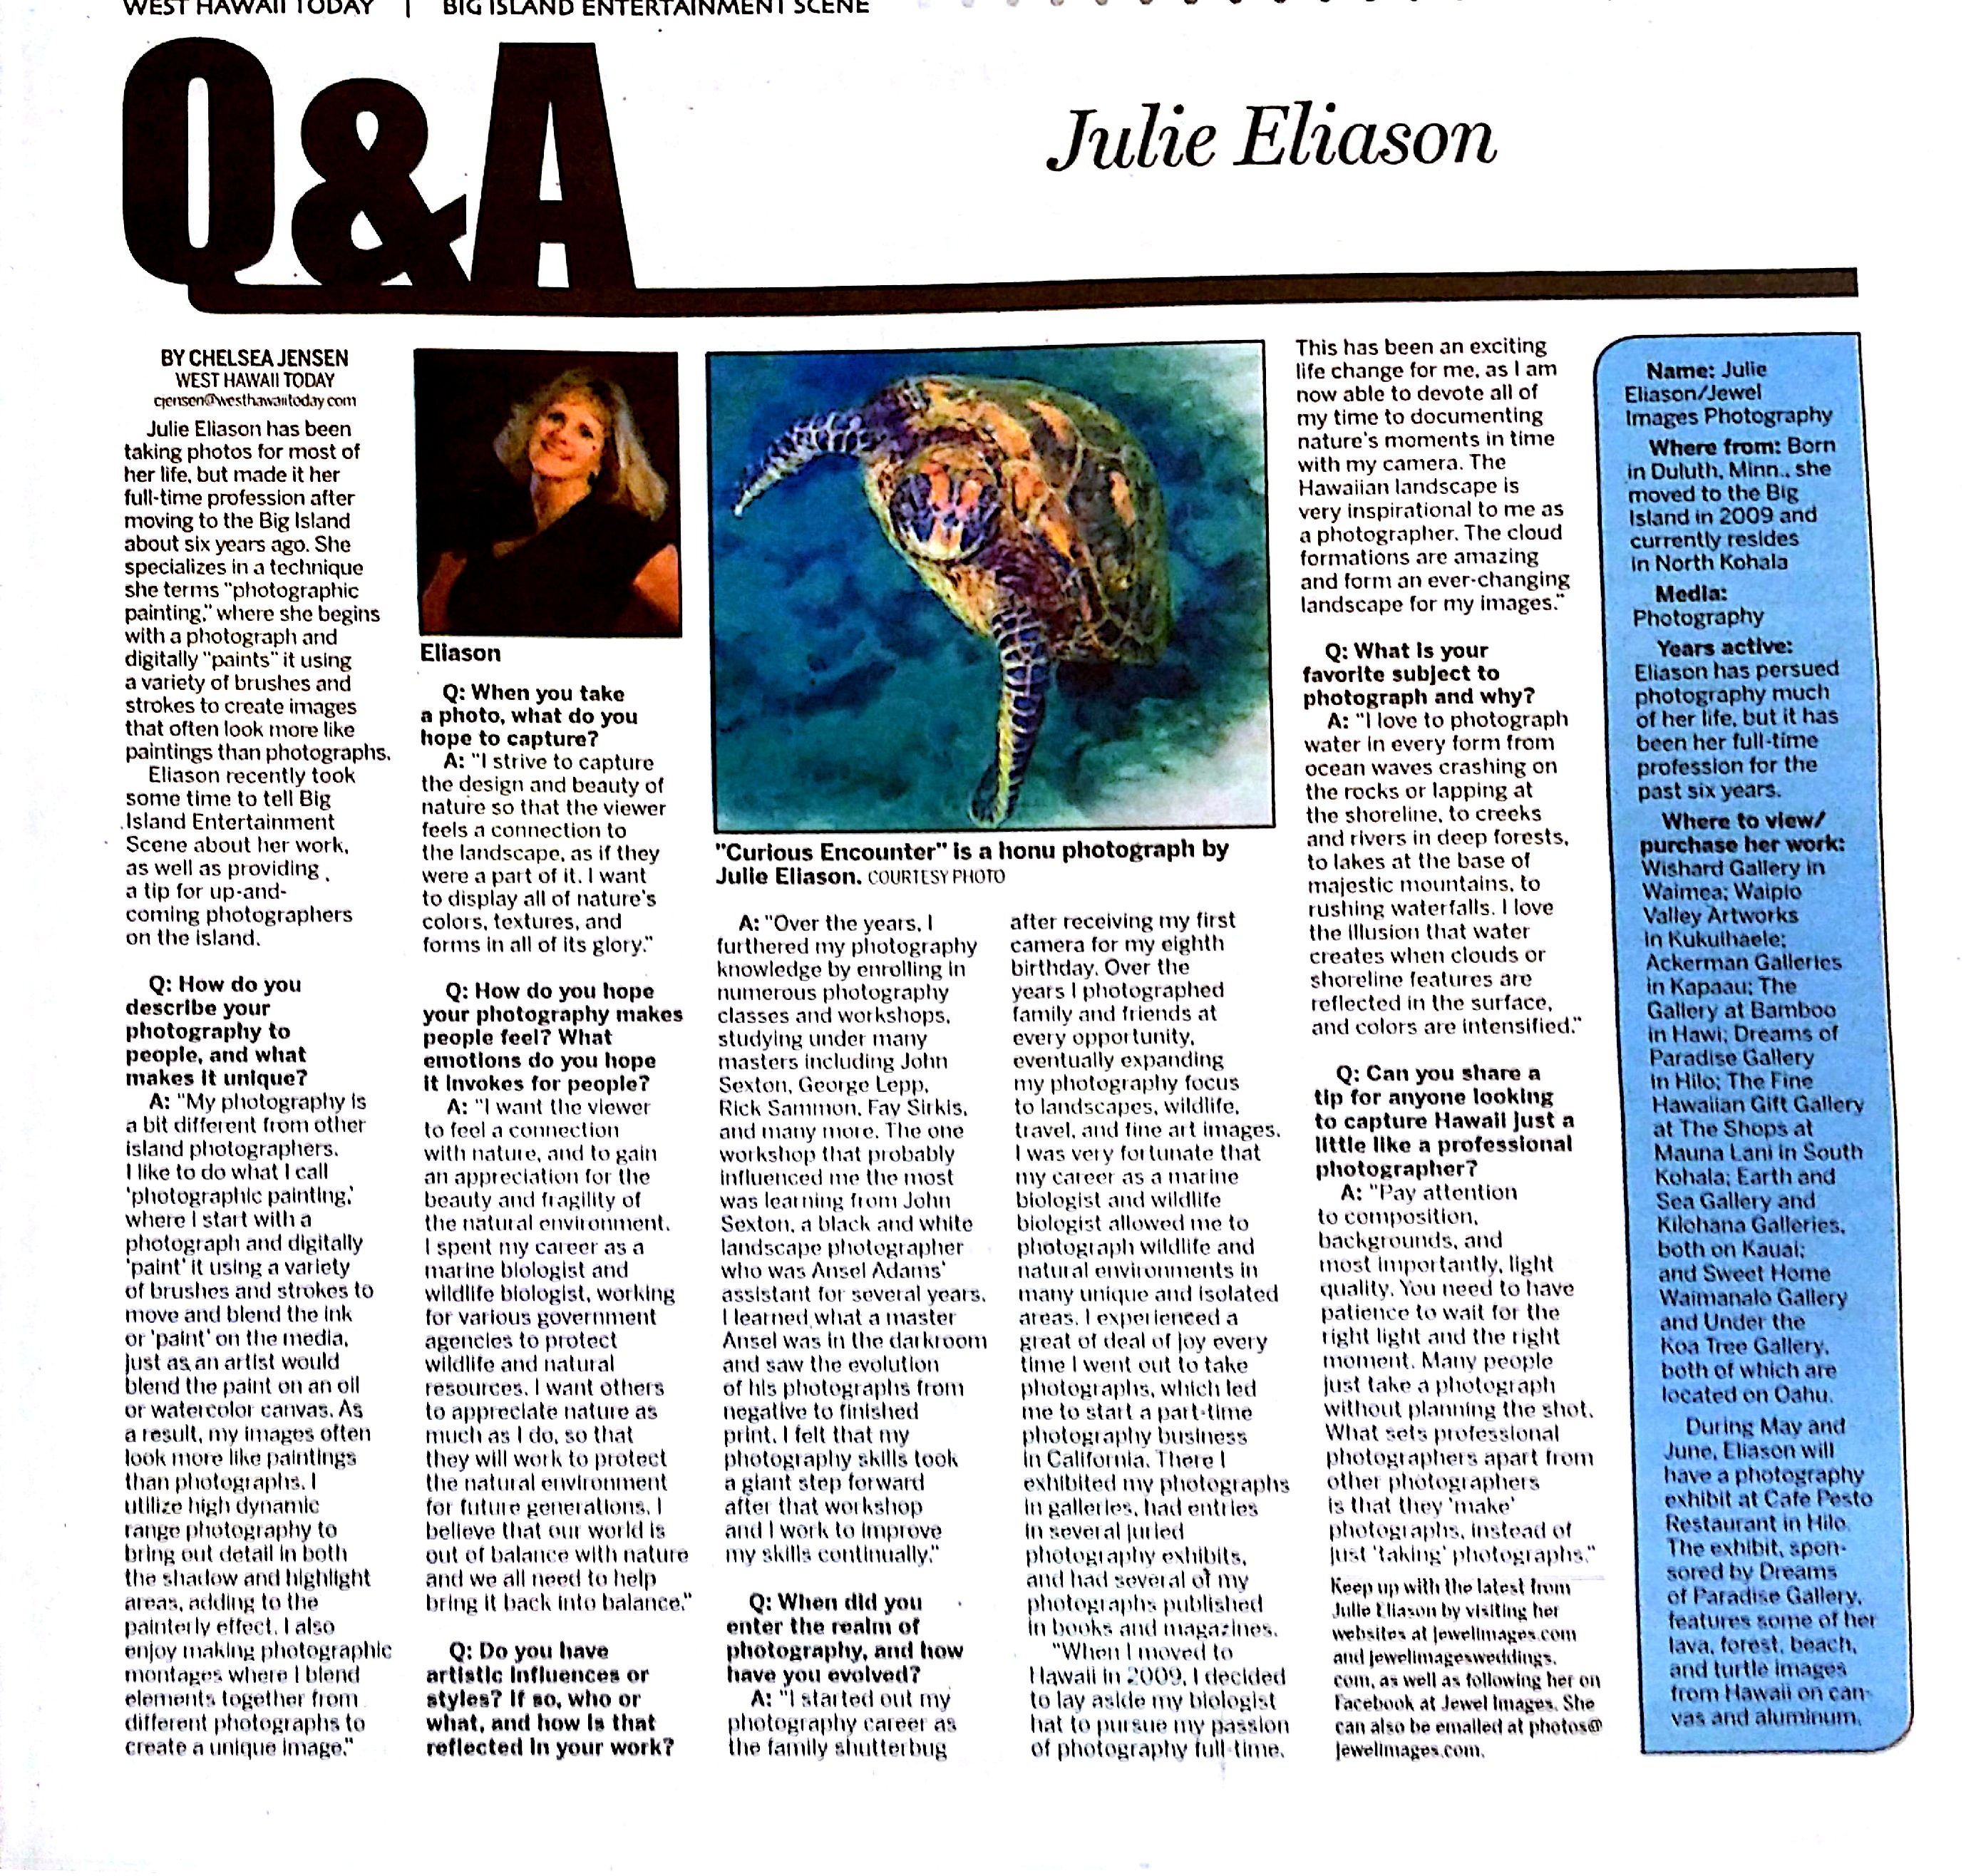 West Hawaii Today Feature Artist Julie J. Eliason